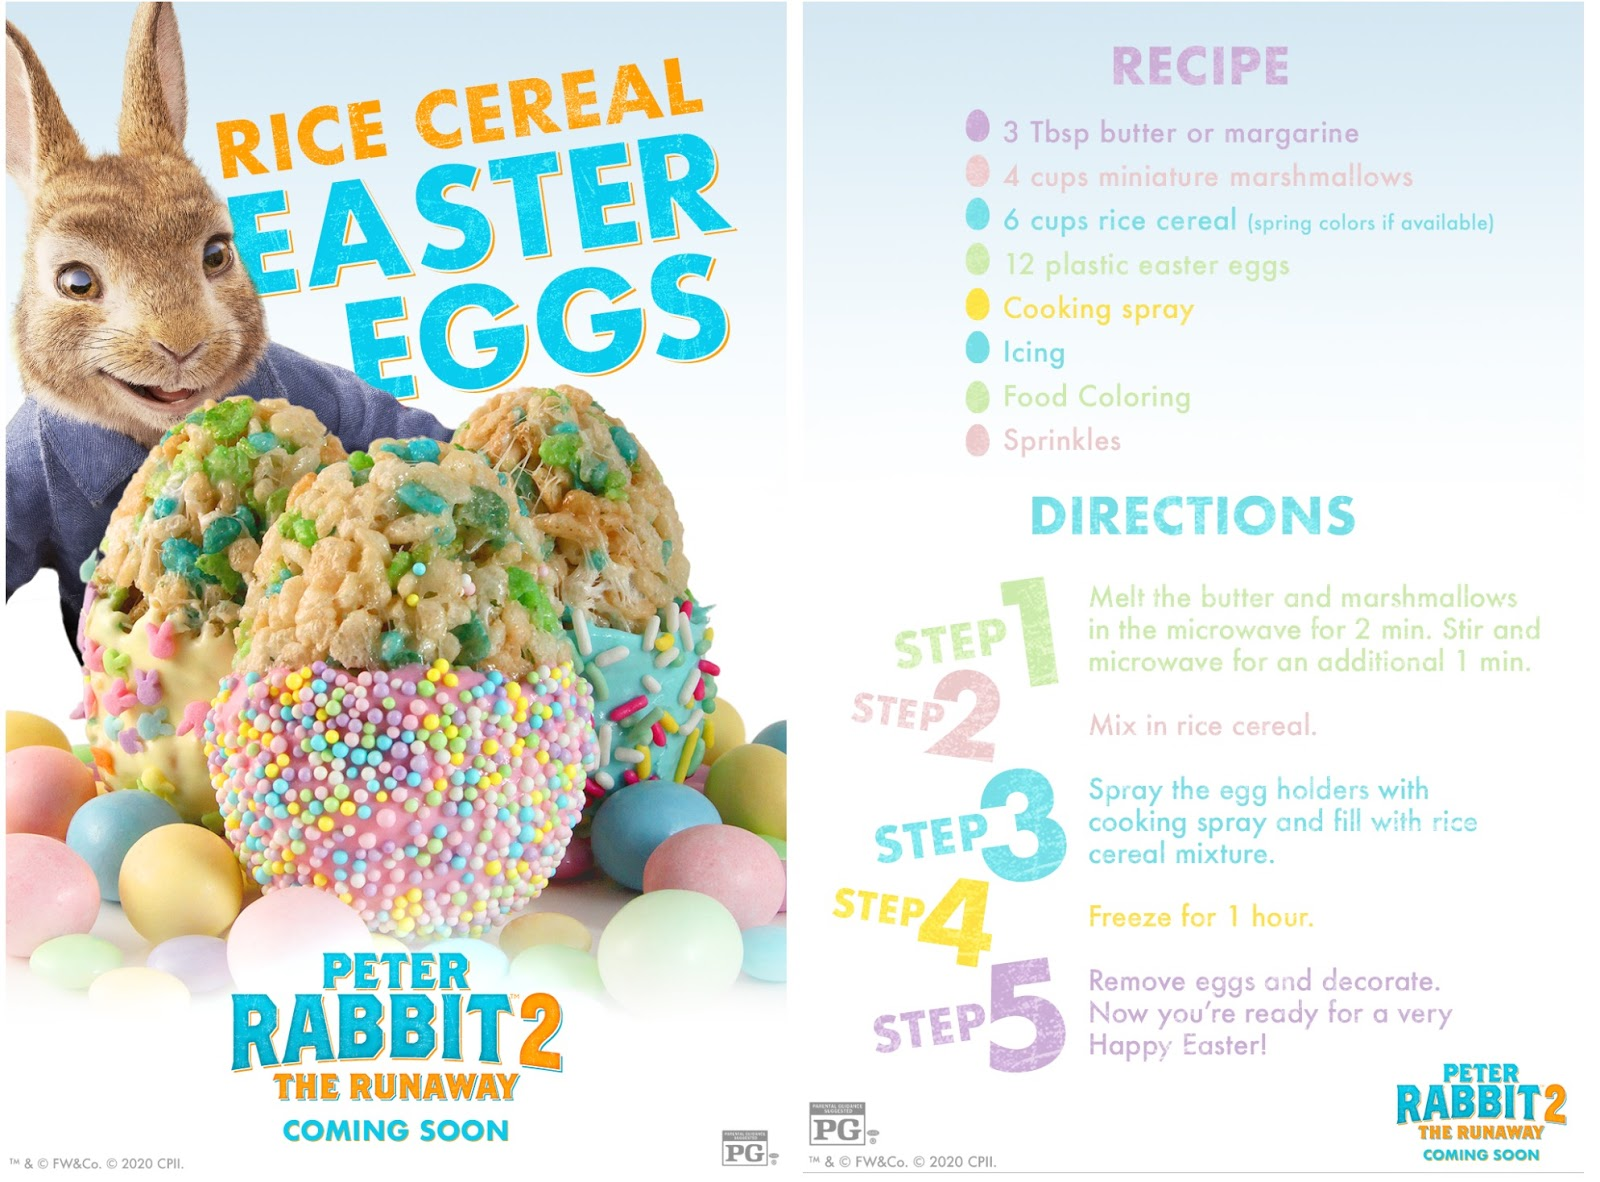 Peter Rabbit 2 Easter Rice Cereal Eggs